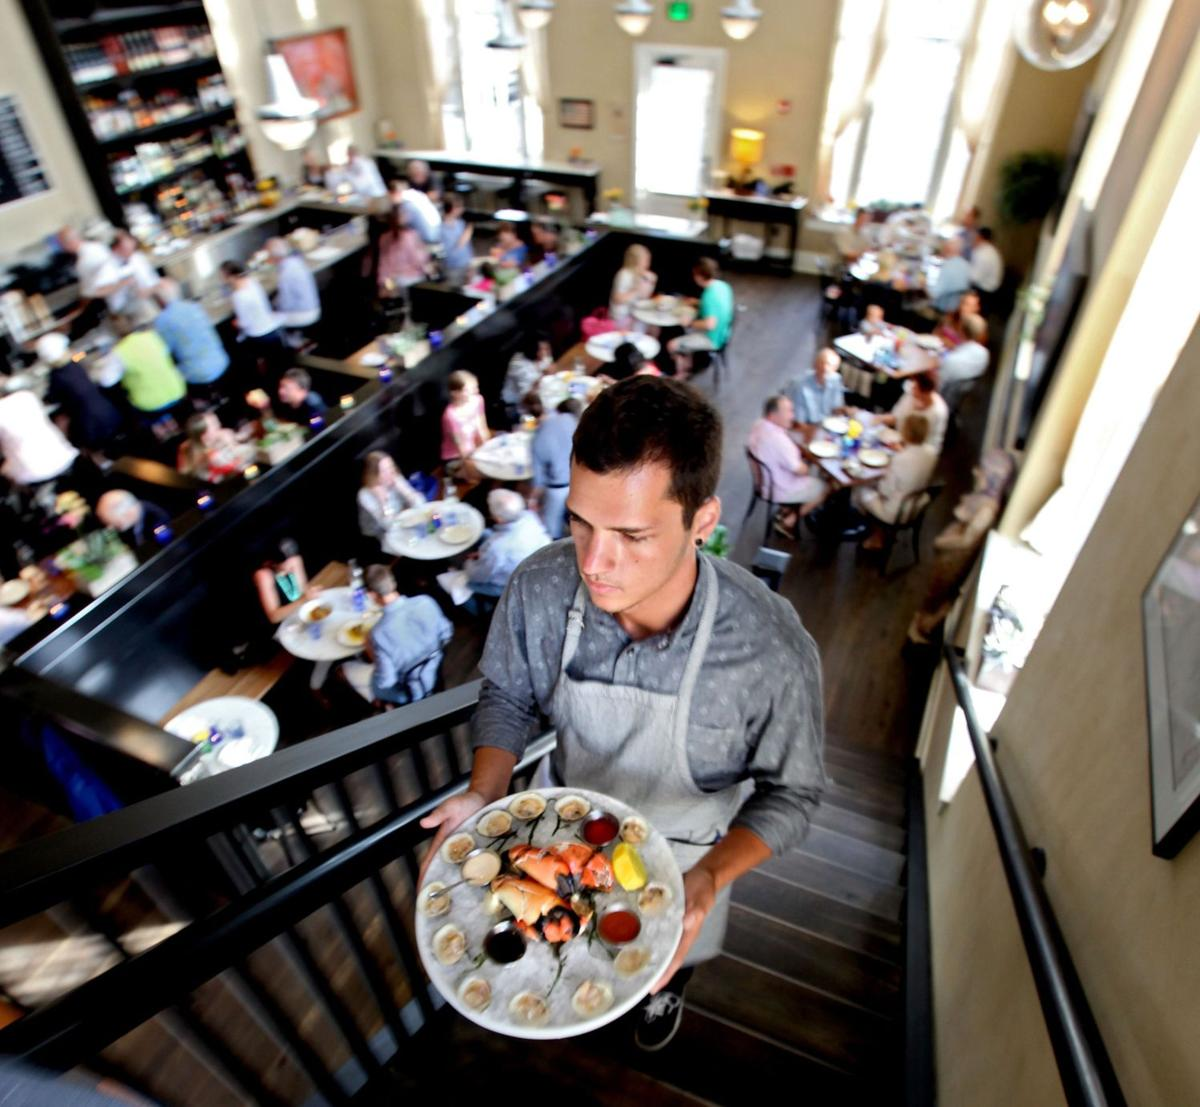 Online reservation startup Resy launches in Charleston after making first foray in April